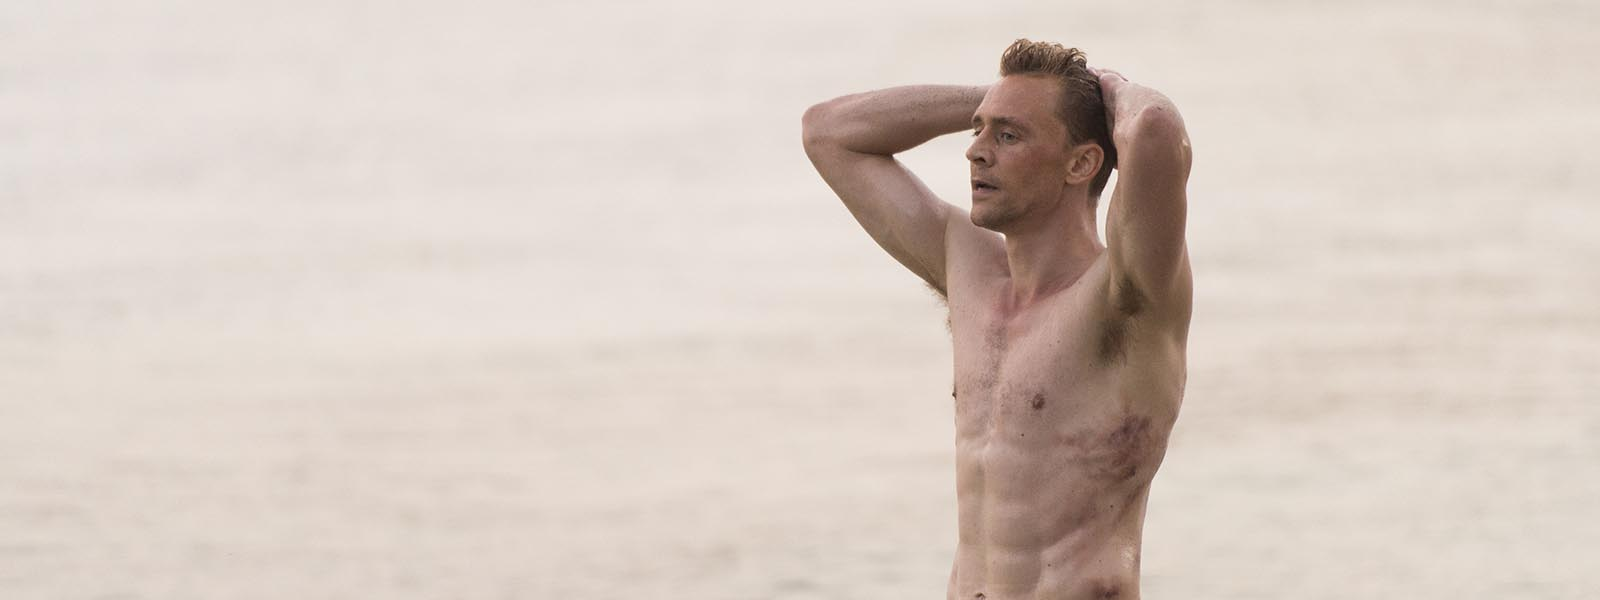 the-night-manager-303-pine-hiddleston-2-800×600